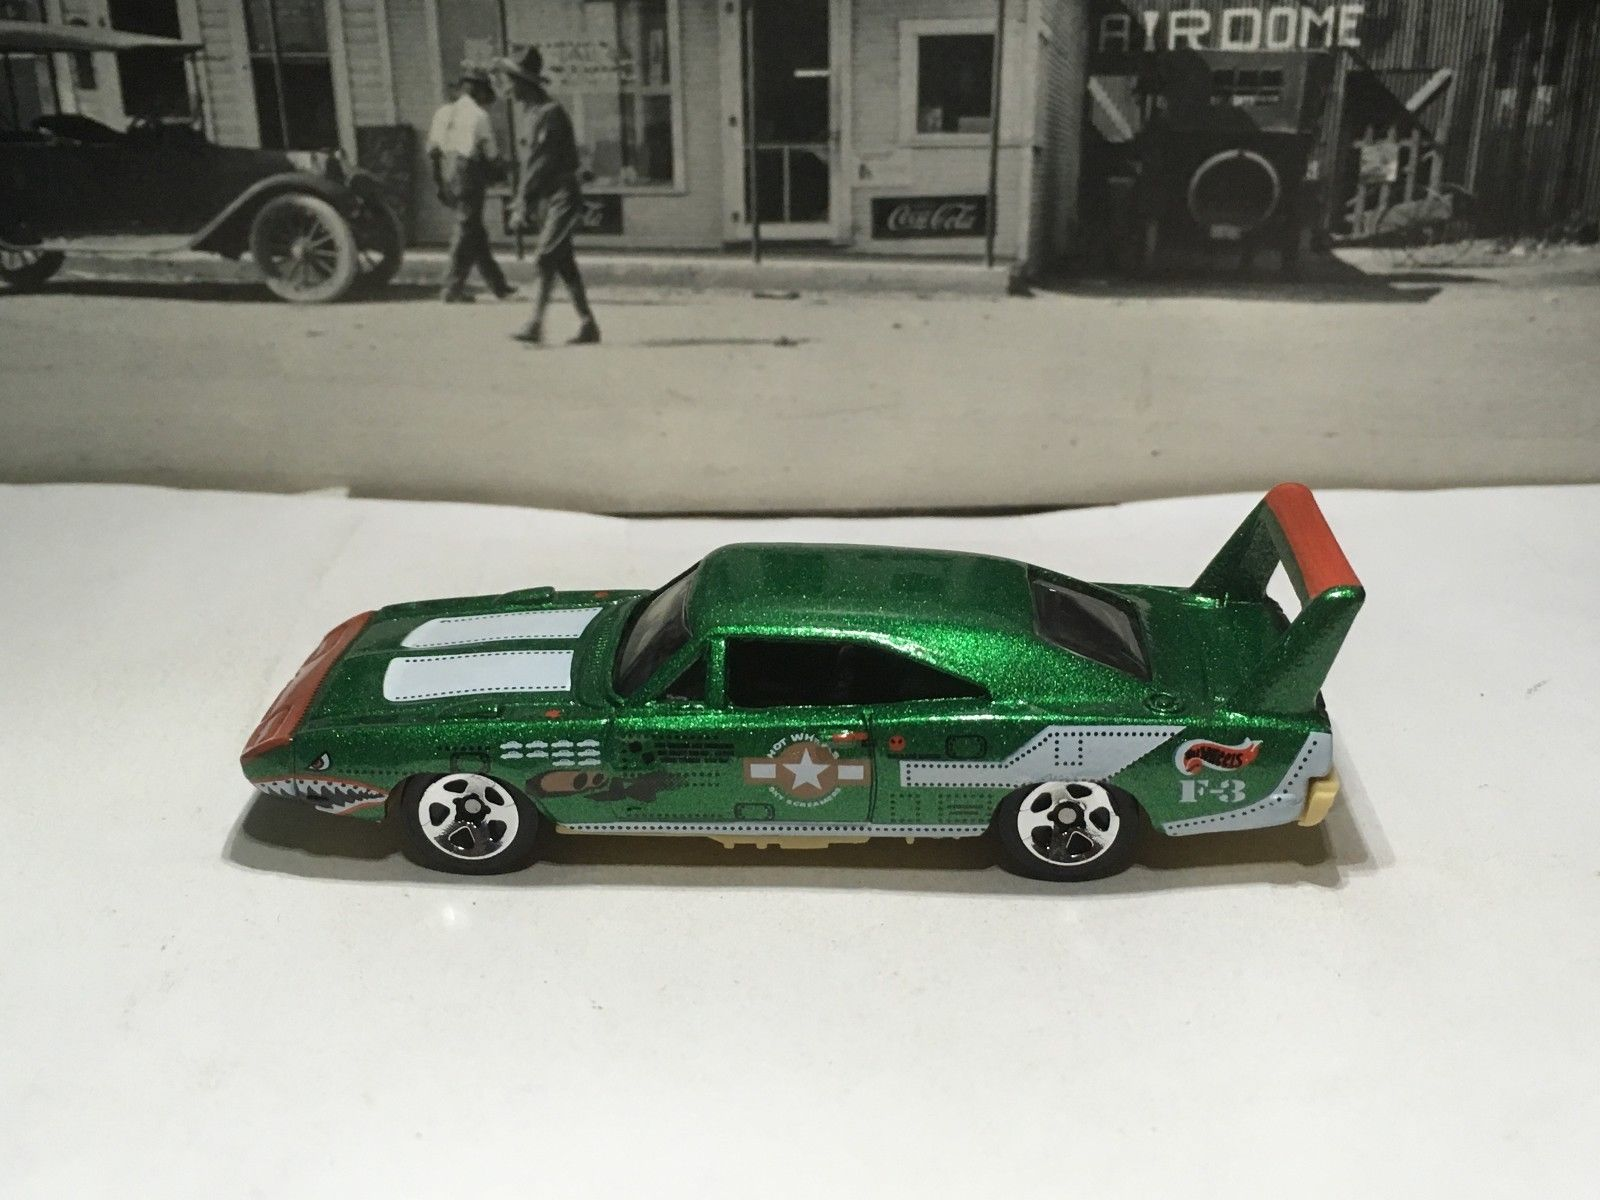 used hot wheels 1970 1969 dodge charger daytona 1998 flying aces green loose 2018 2019 24carshop com 24carshop com